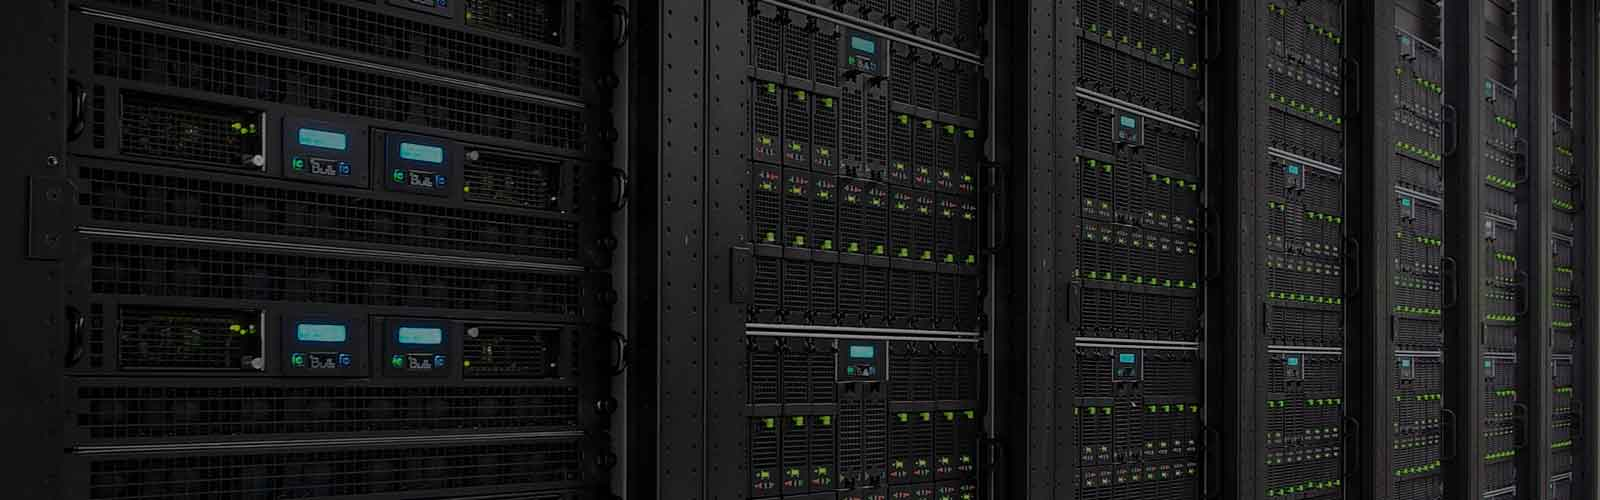 Unmanaged Dedicated Servers